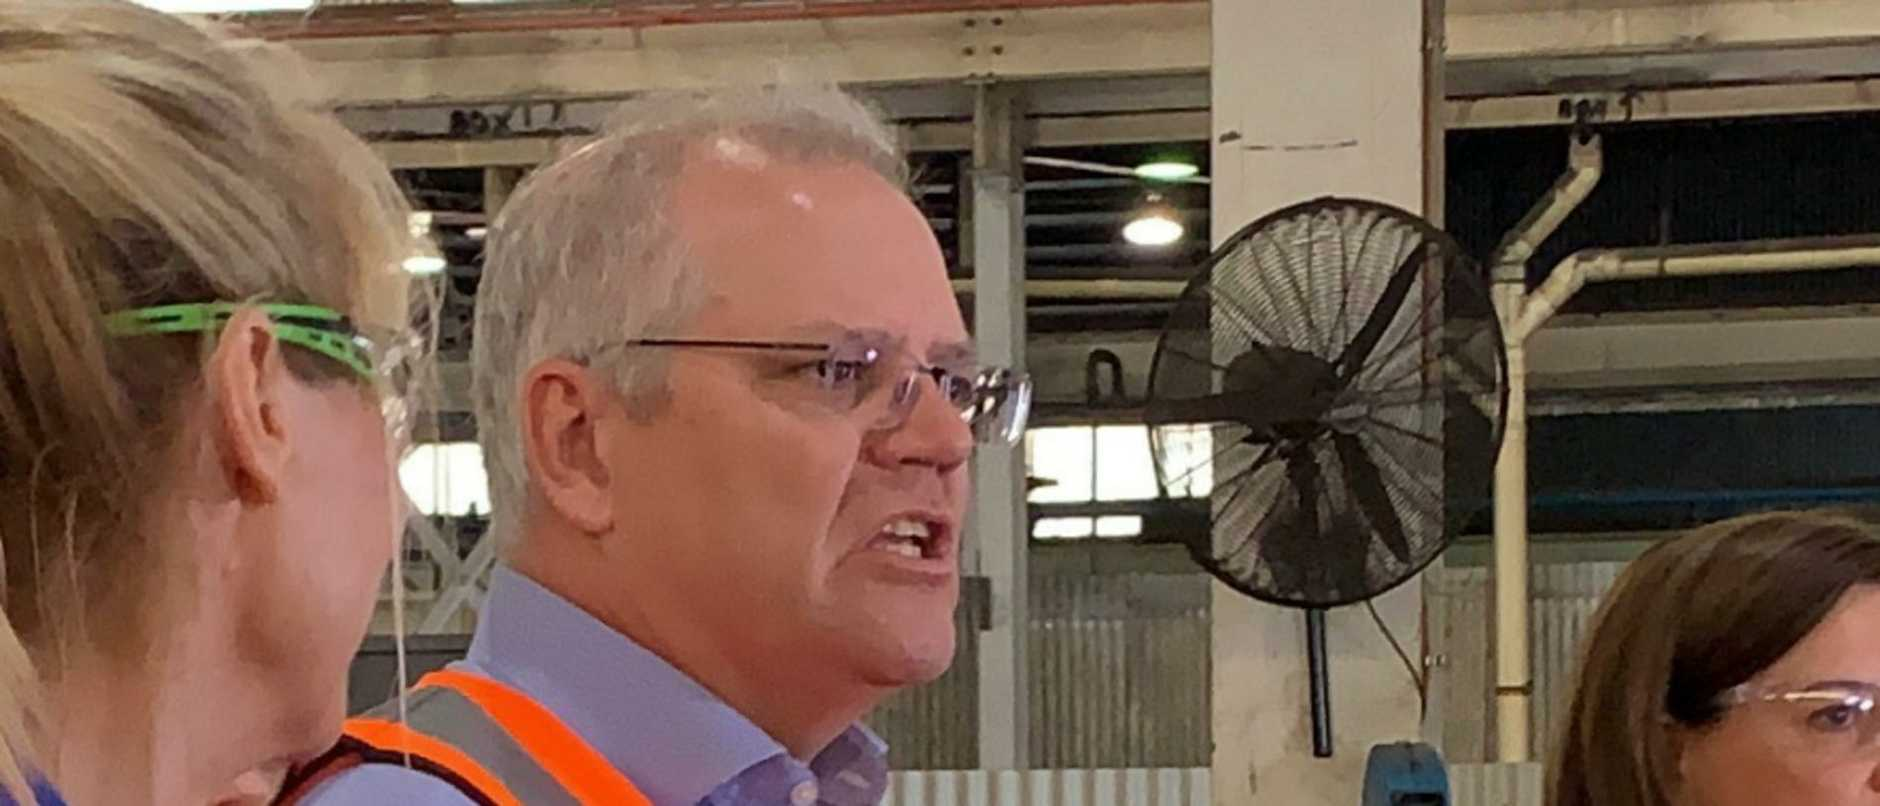 Prime Minister Scott Morrison has shared his thoughts on the Queensland border closure during a visit to the Gold Coast.